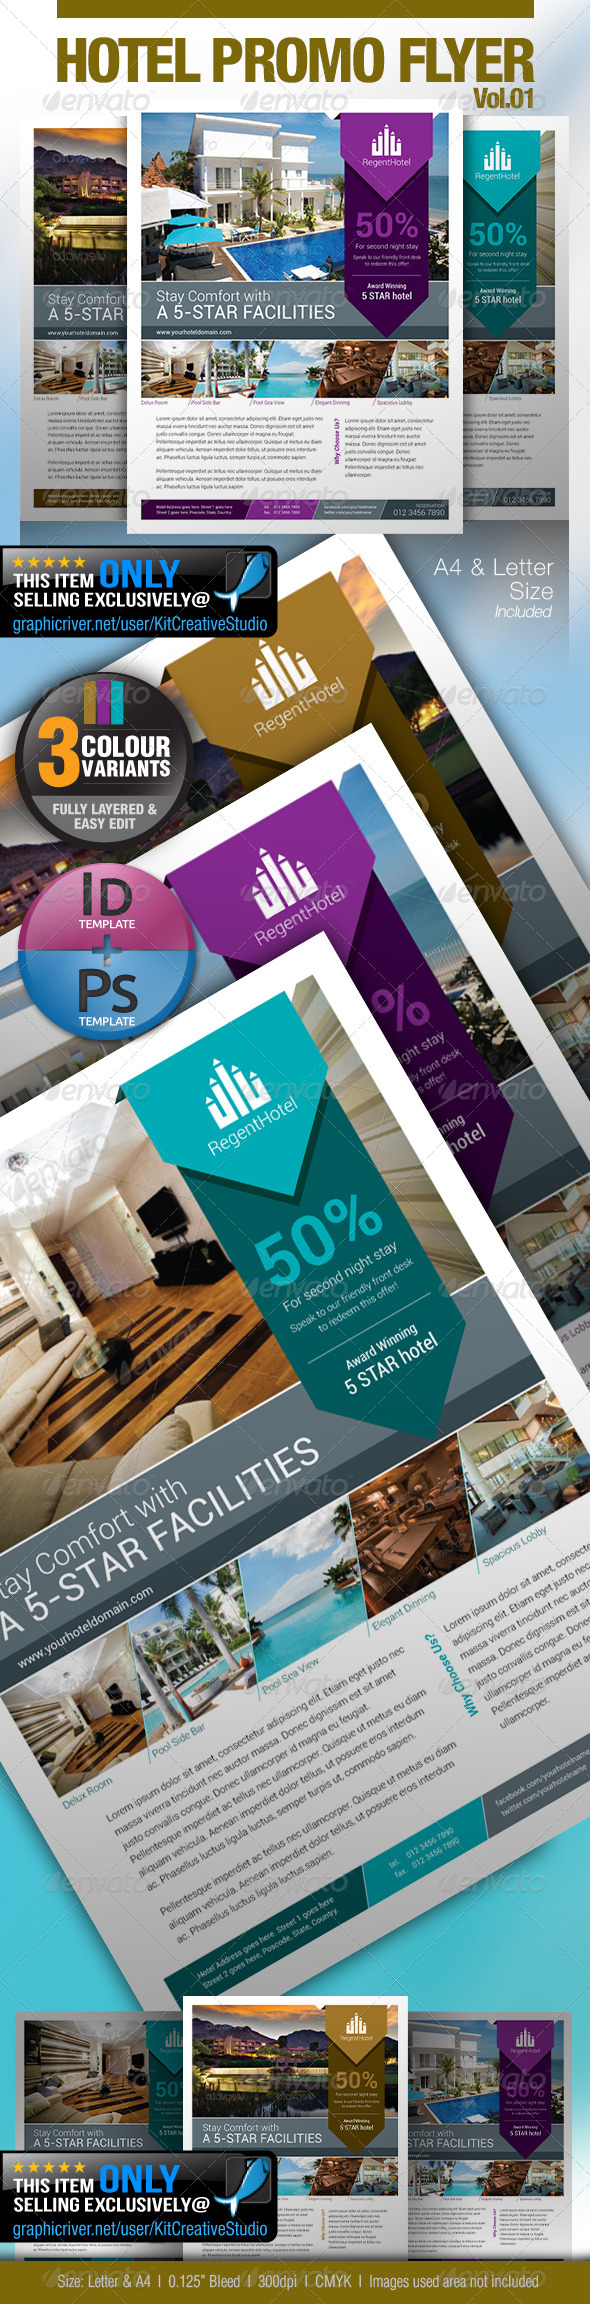 GraphicRiver Hotel Promo Flyer Vol.01 5335953